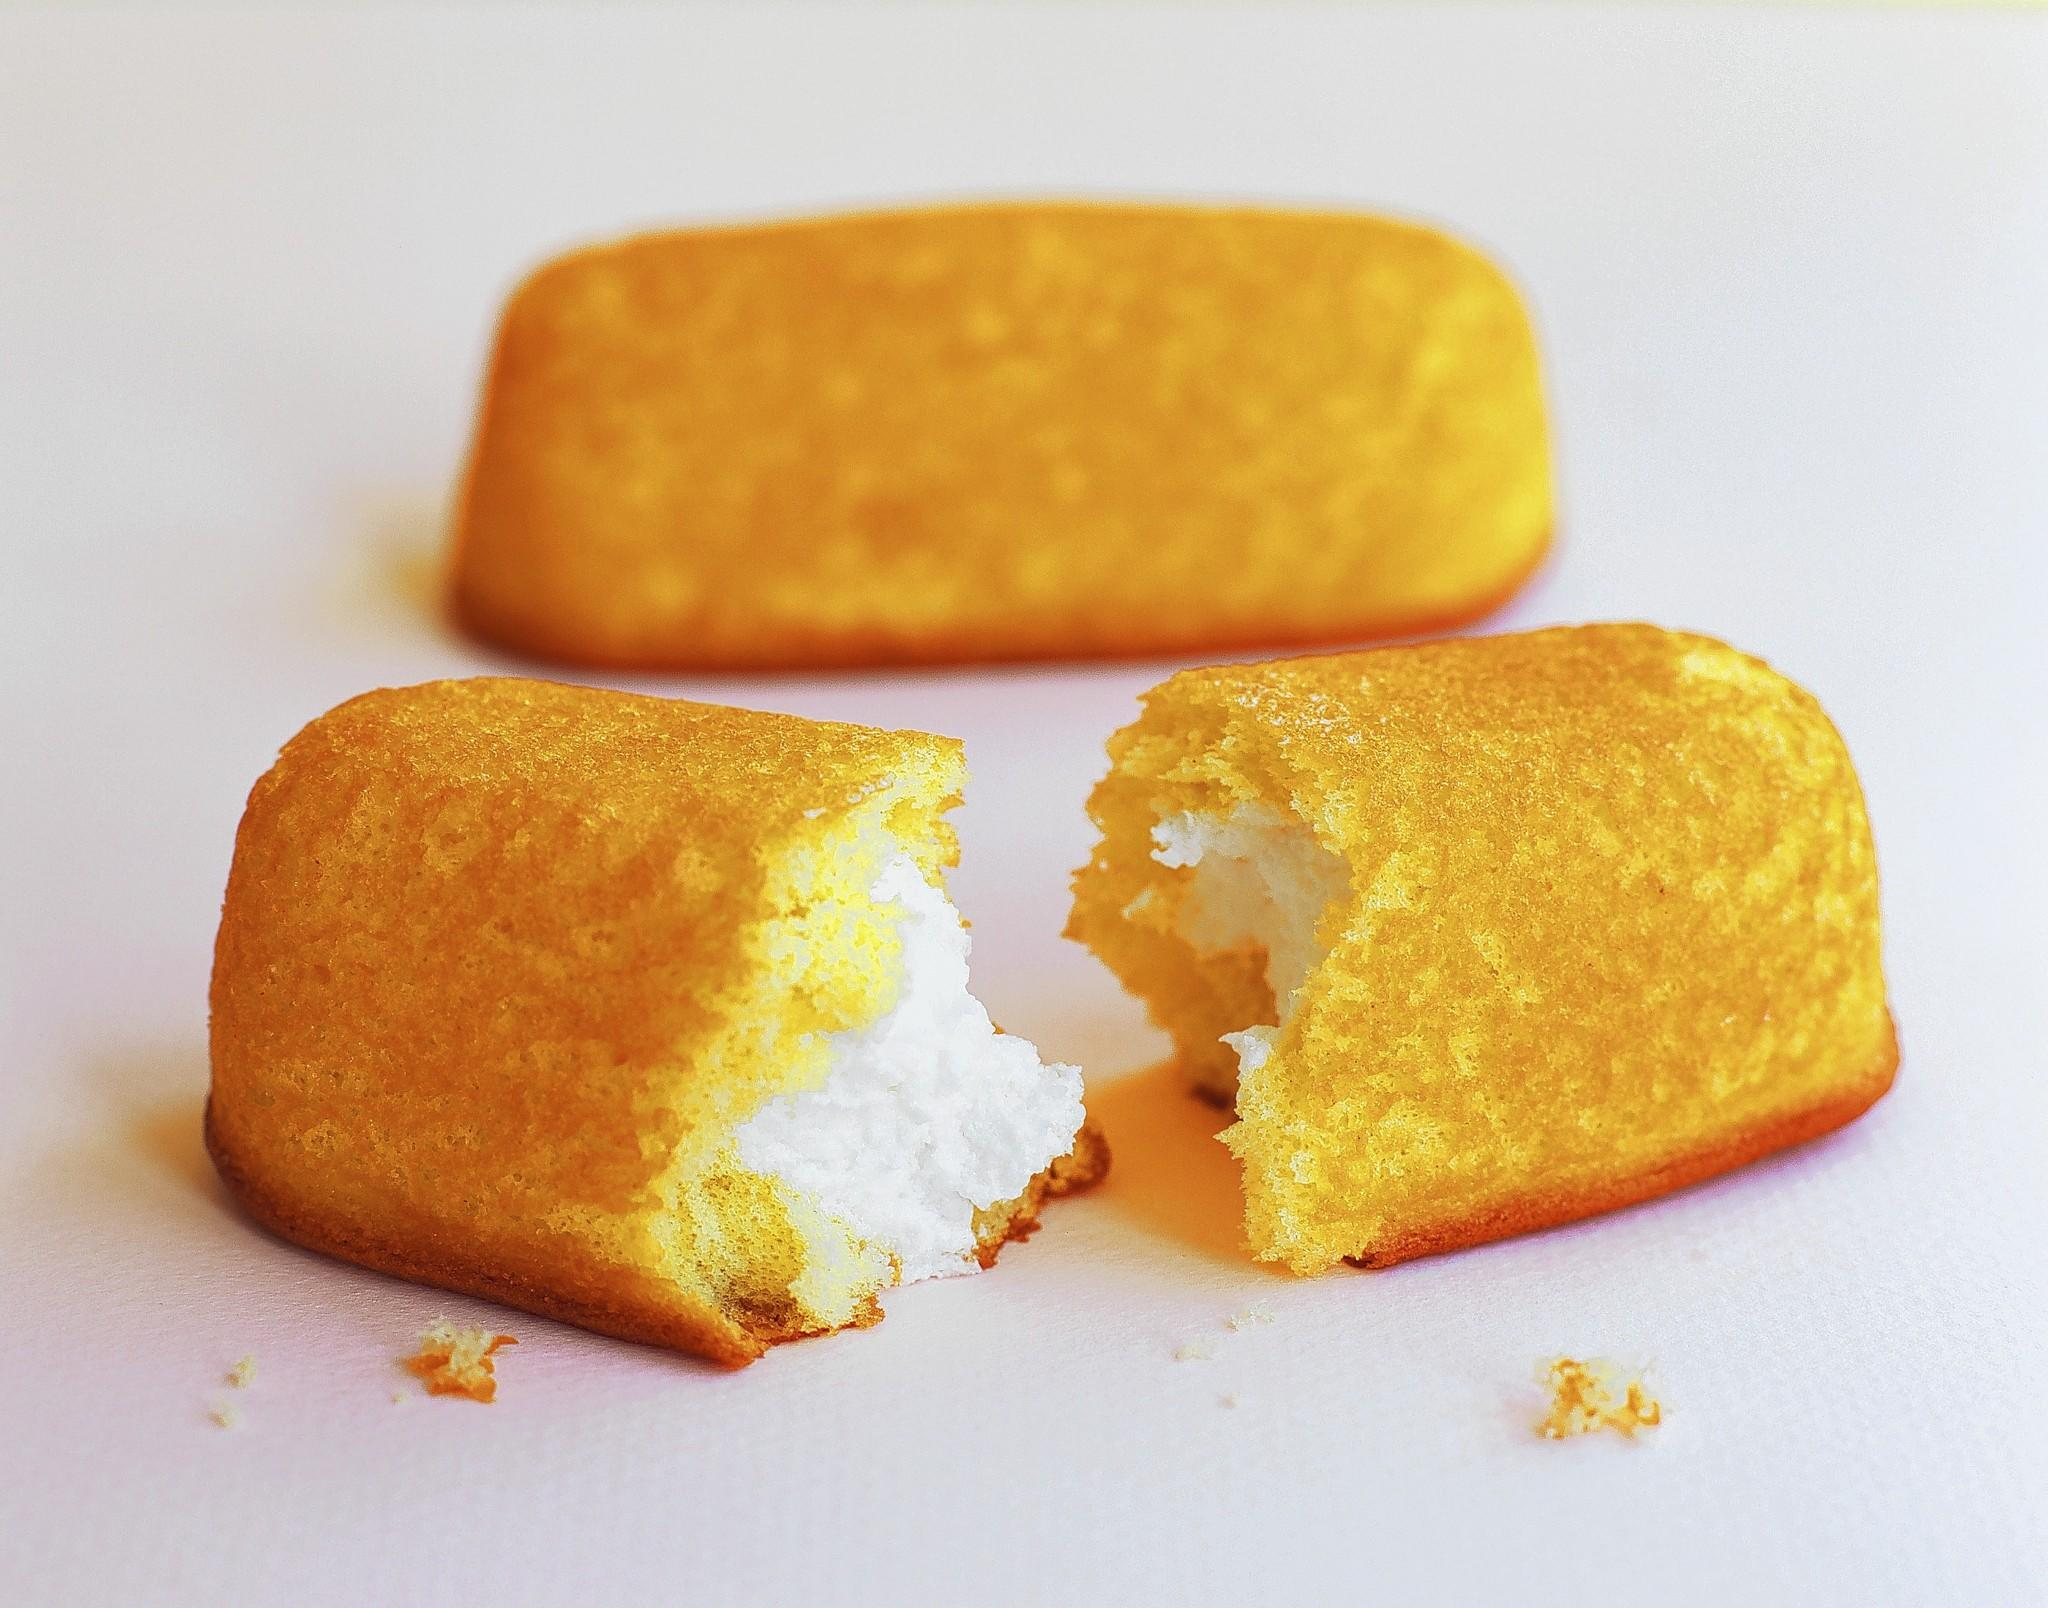 Calories from eating a Twinkie are not the same as calories from more healthful foods such as fruit and nuts, experts say.